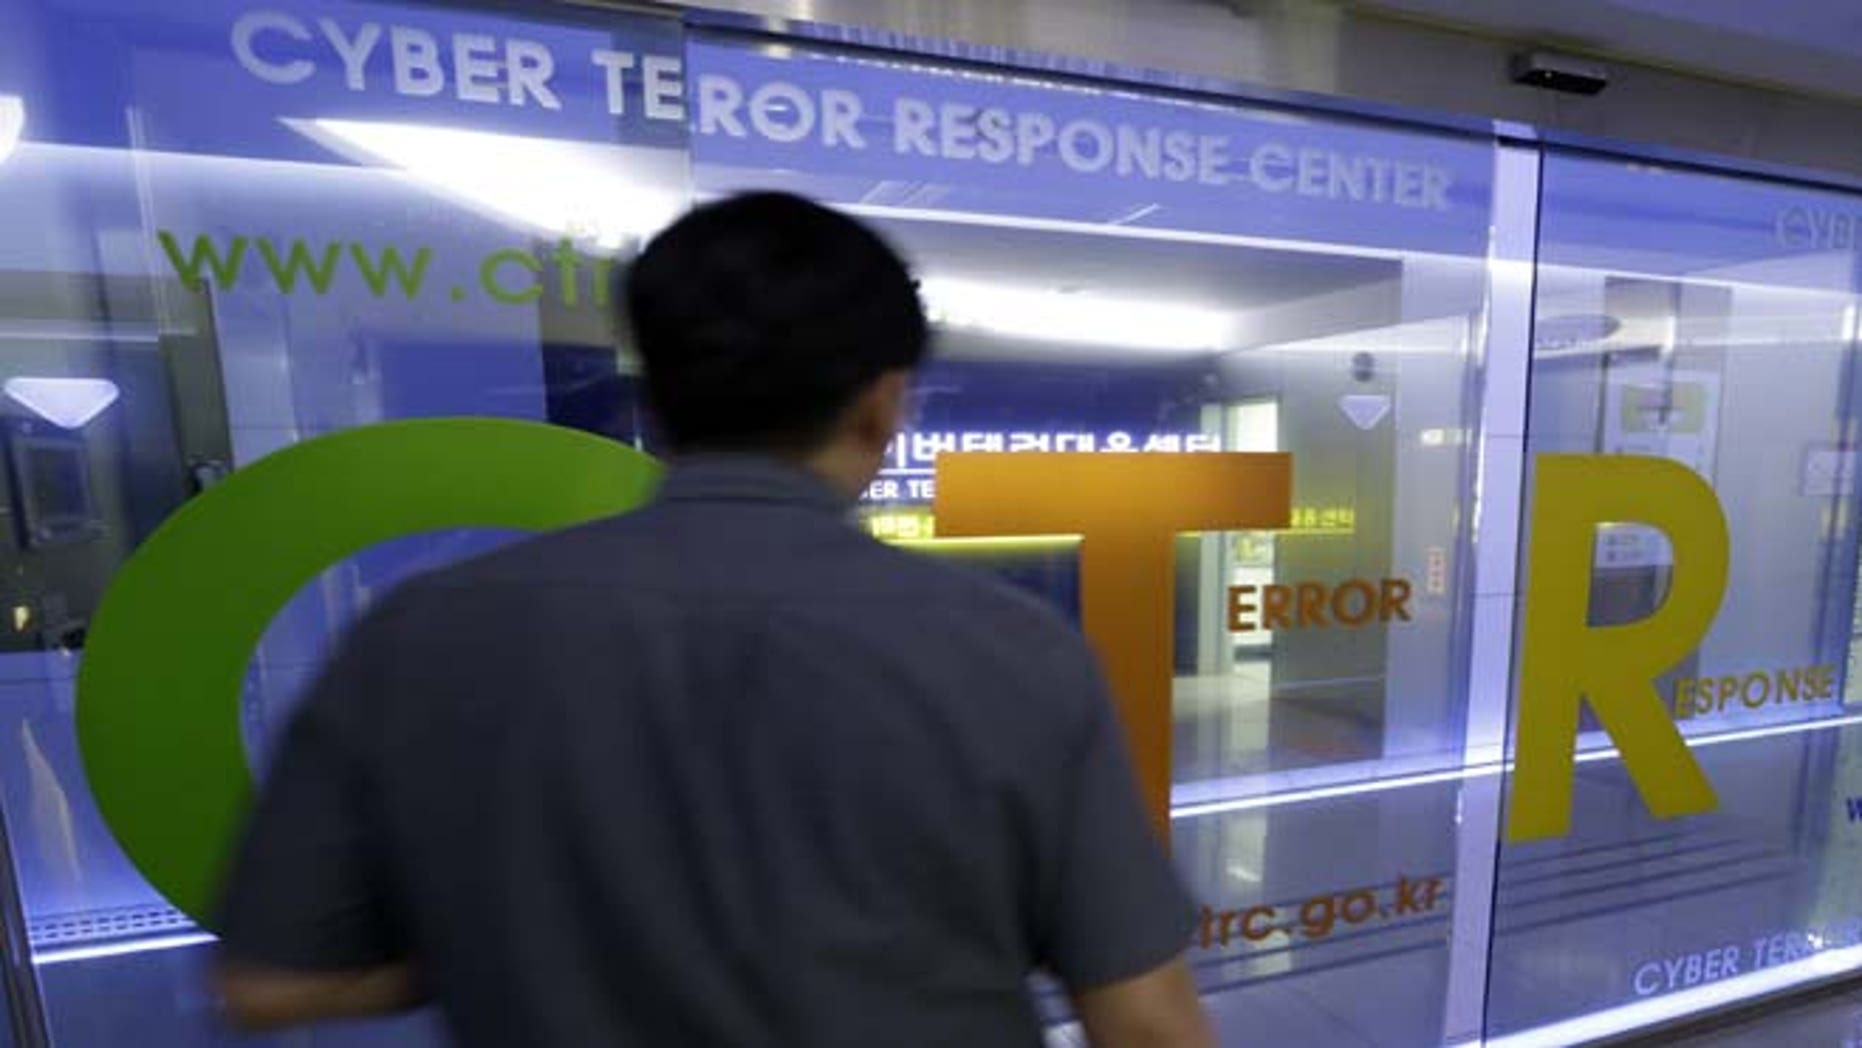 June 25, 2013: A man walks by a gate at Cyber Terror Response Center of National Police Agency in Seoul, South Korea. South Korea said multiple government and private sector websites were hacked on Tuesday's anniversary of the start of the Korean War, and Seoul issued a cyberattack alert warning officials and citizens to take security measures.